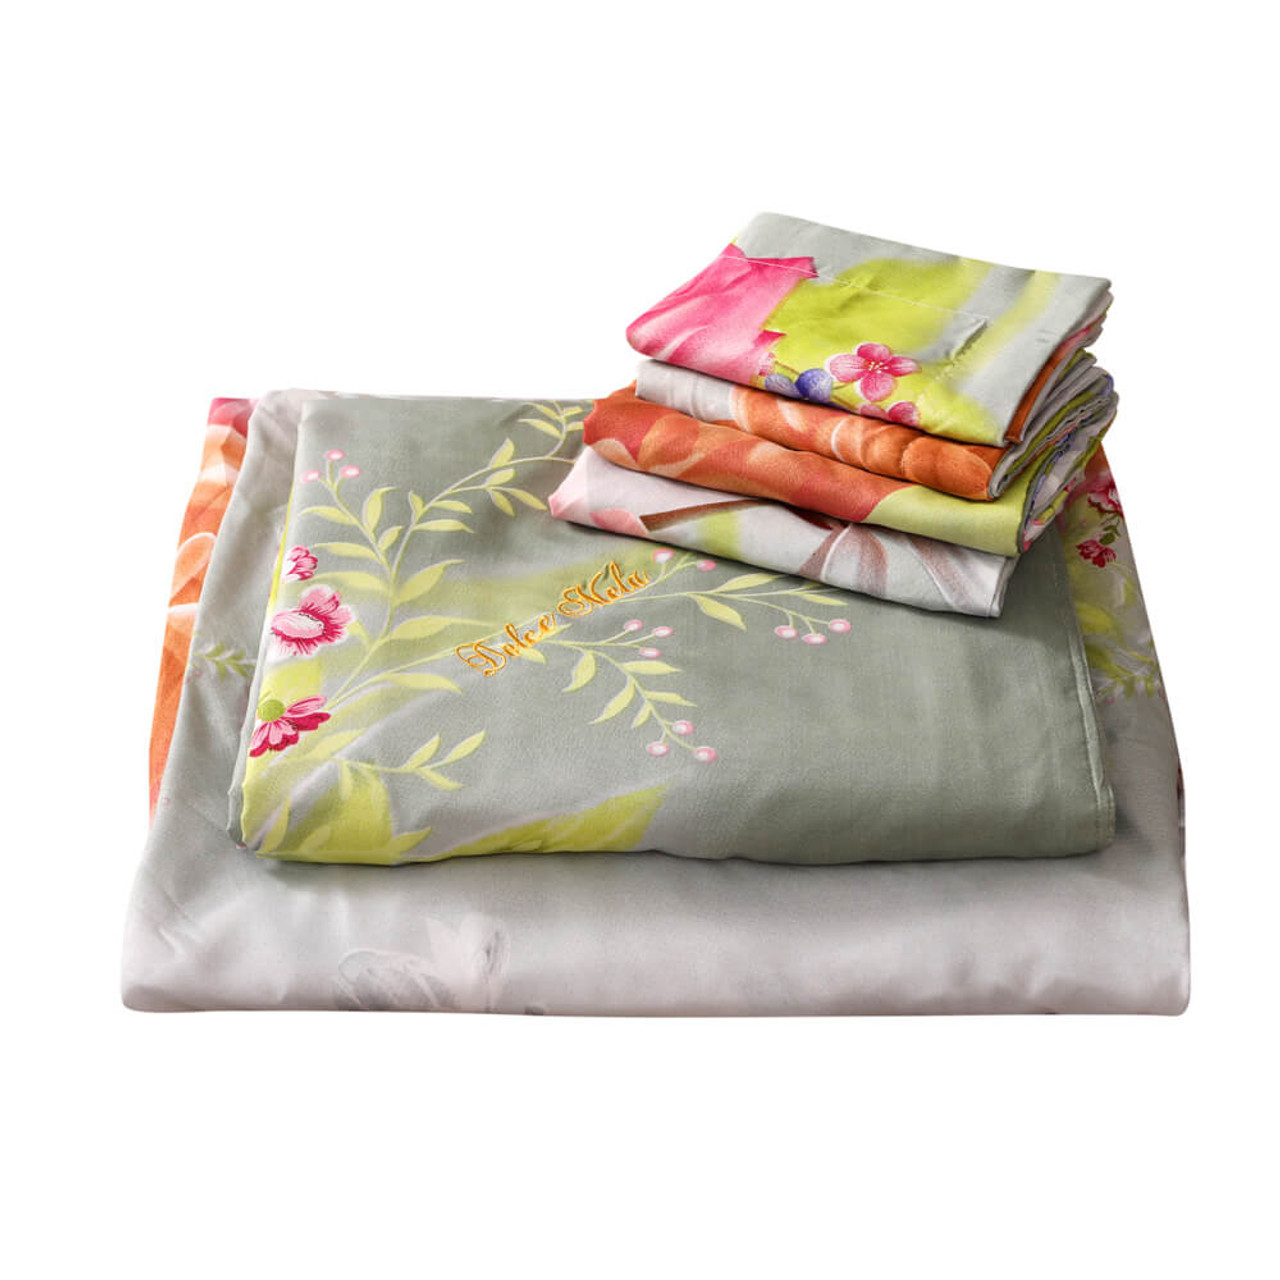 Bed-in-a-Bag for Drop-shipping Jacquard Duvet Cover Set